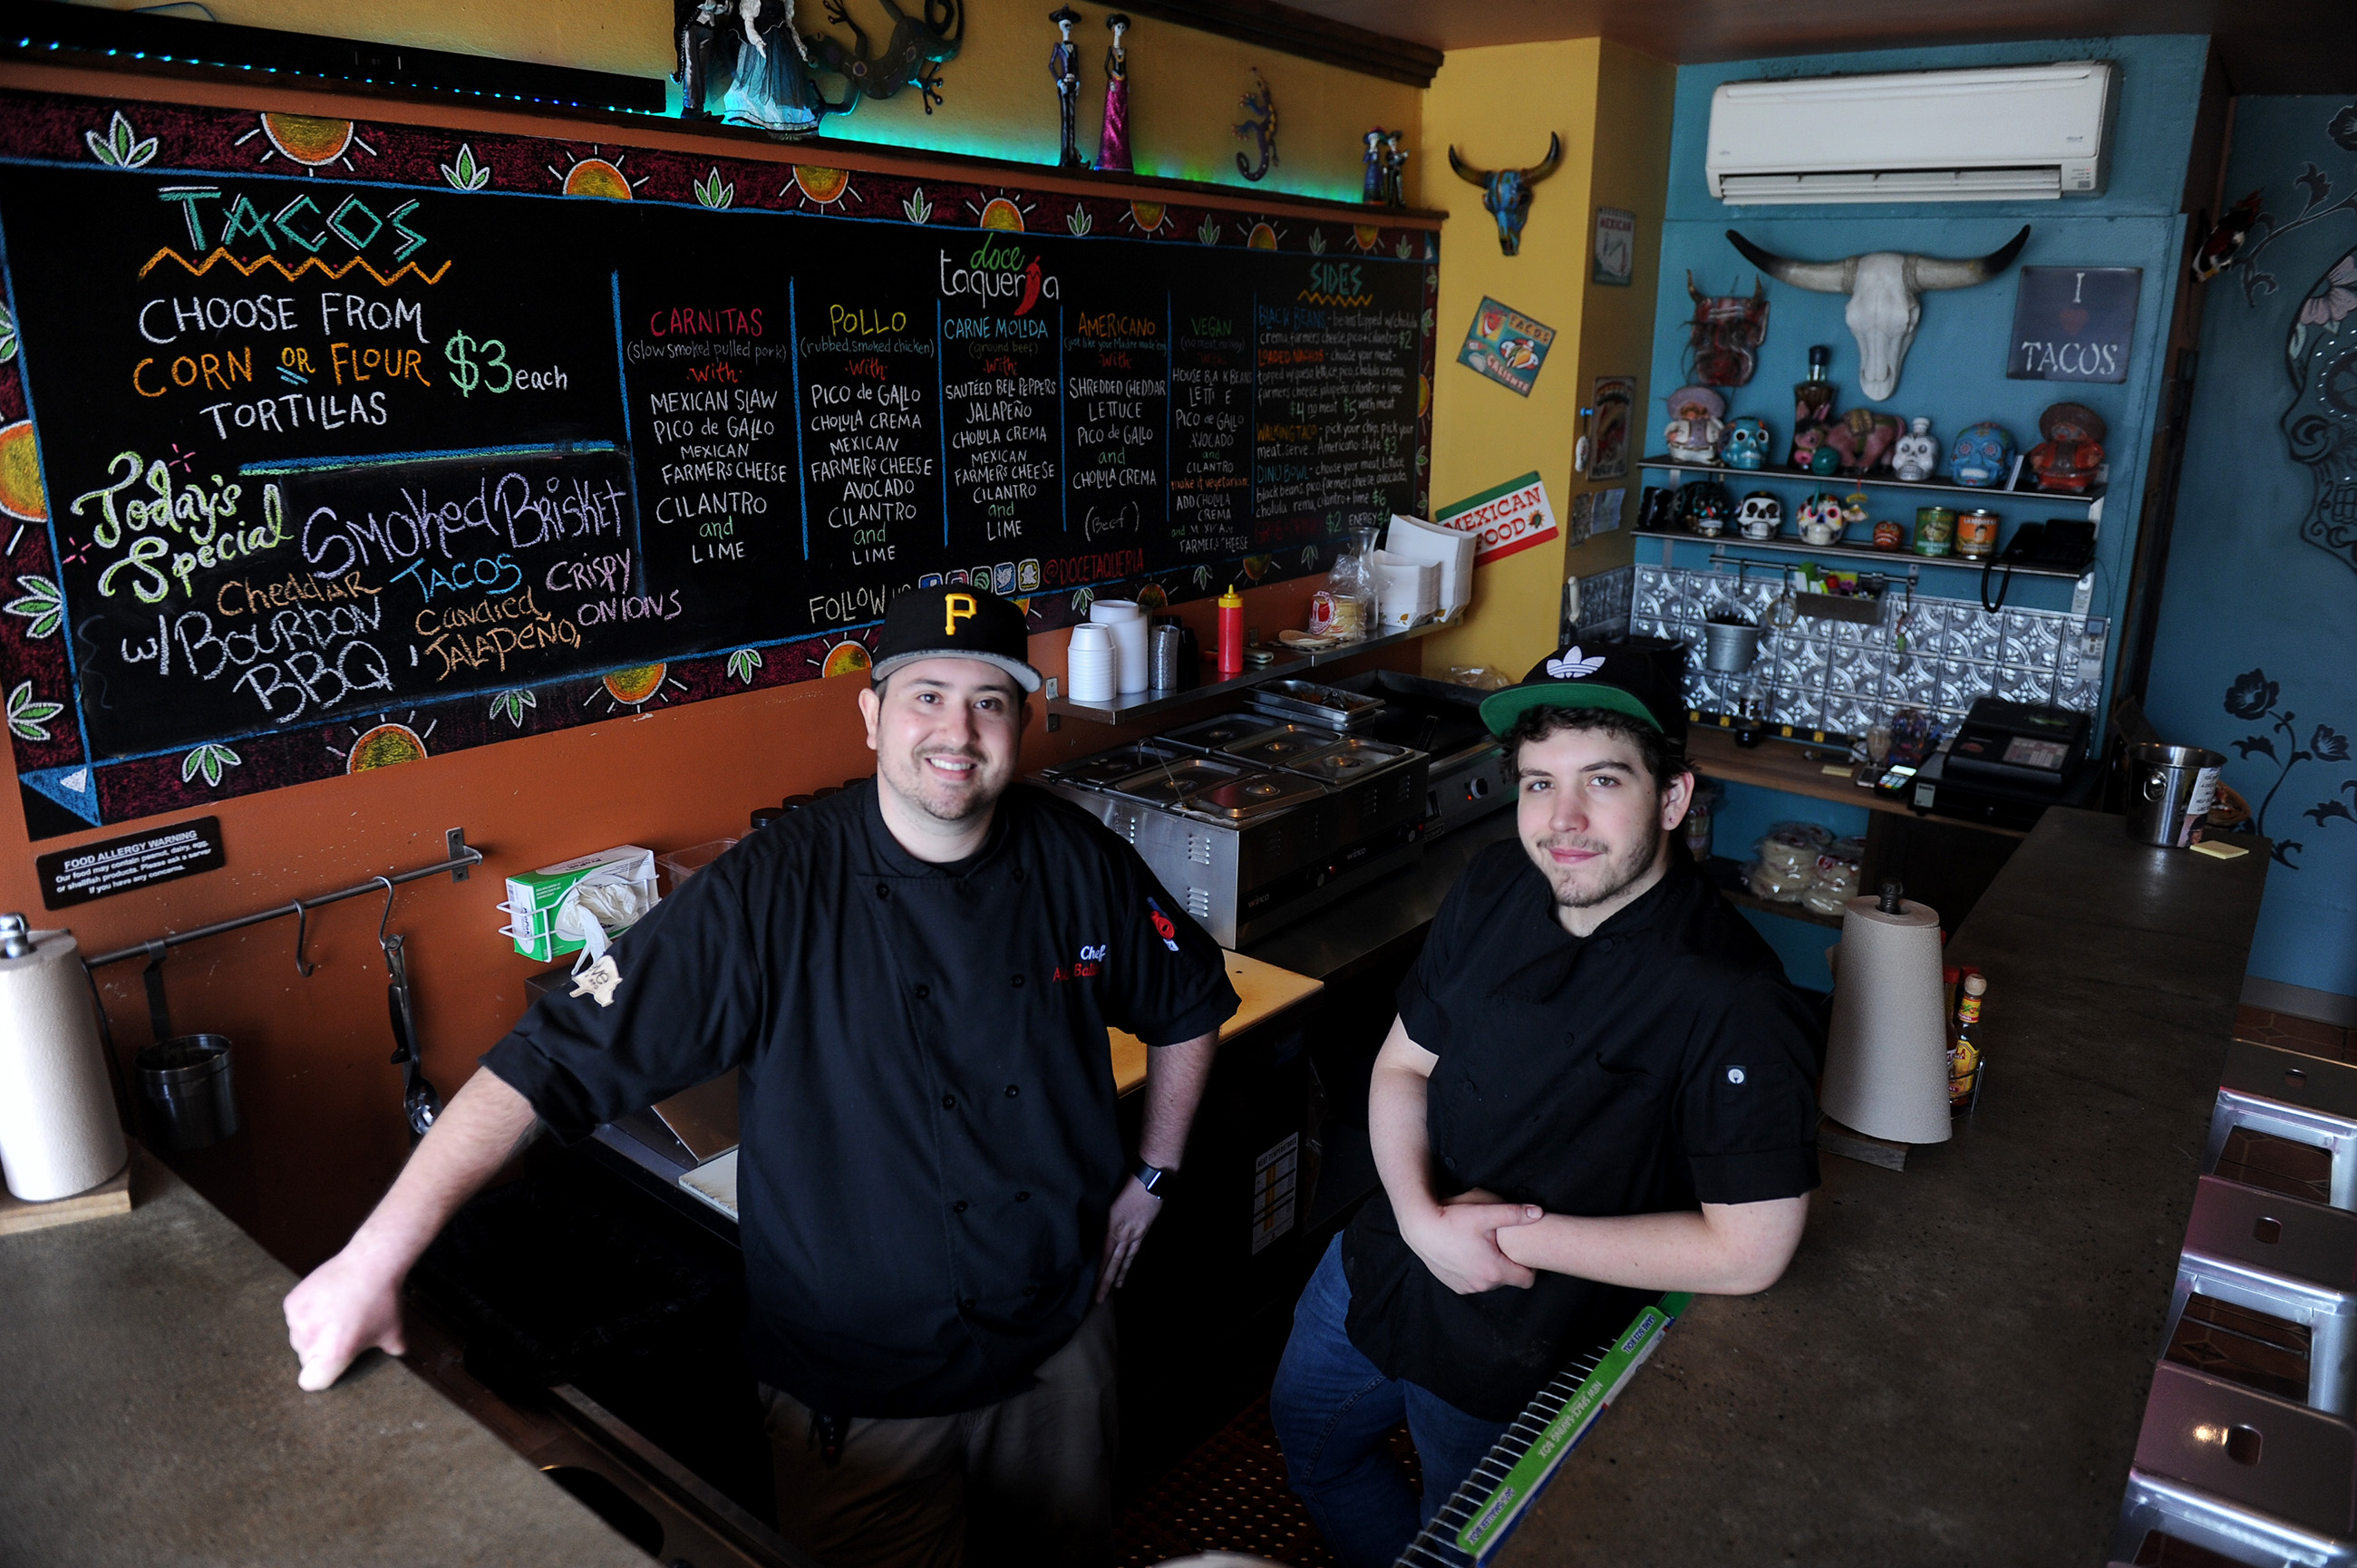 20170523ppDoceTaqueria1MAG Doce Taqueria Chefs Alex Balint and Sean Riffe at the South Side restaurant Tuesday, May 23, 2017.